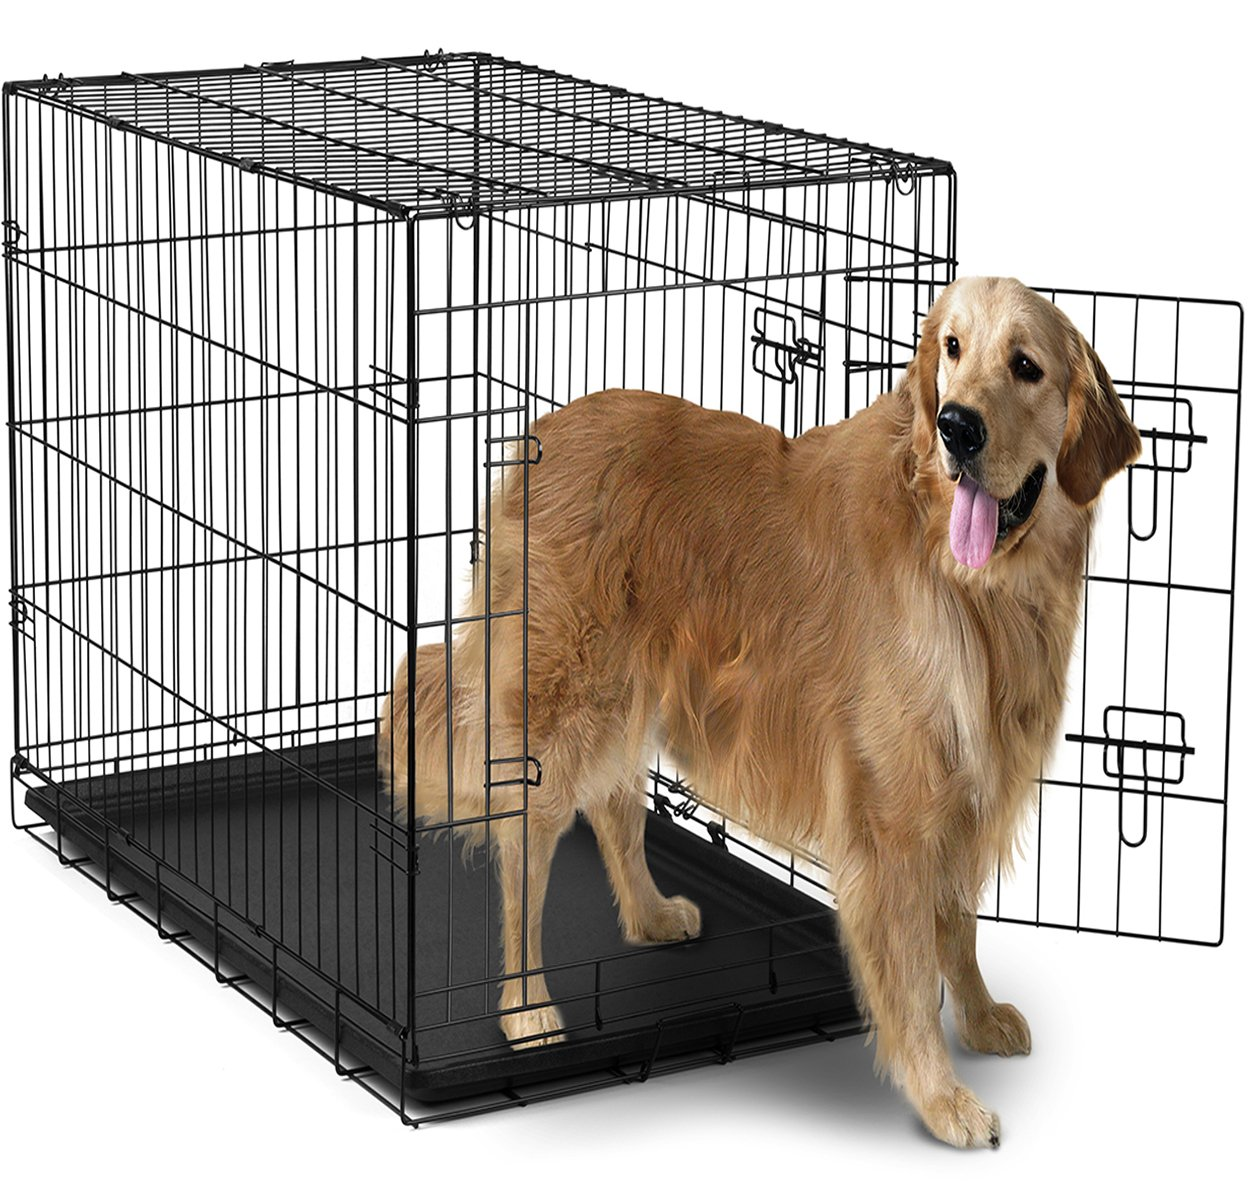 amazoncom  oxgord  xxl dog crate doubledoors folding metal  - amazoncom  oxgord  xxl dog crate doubledoors folding metal wdivider  tray  x  x   newly designed model  pet supplies